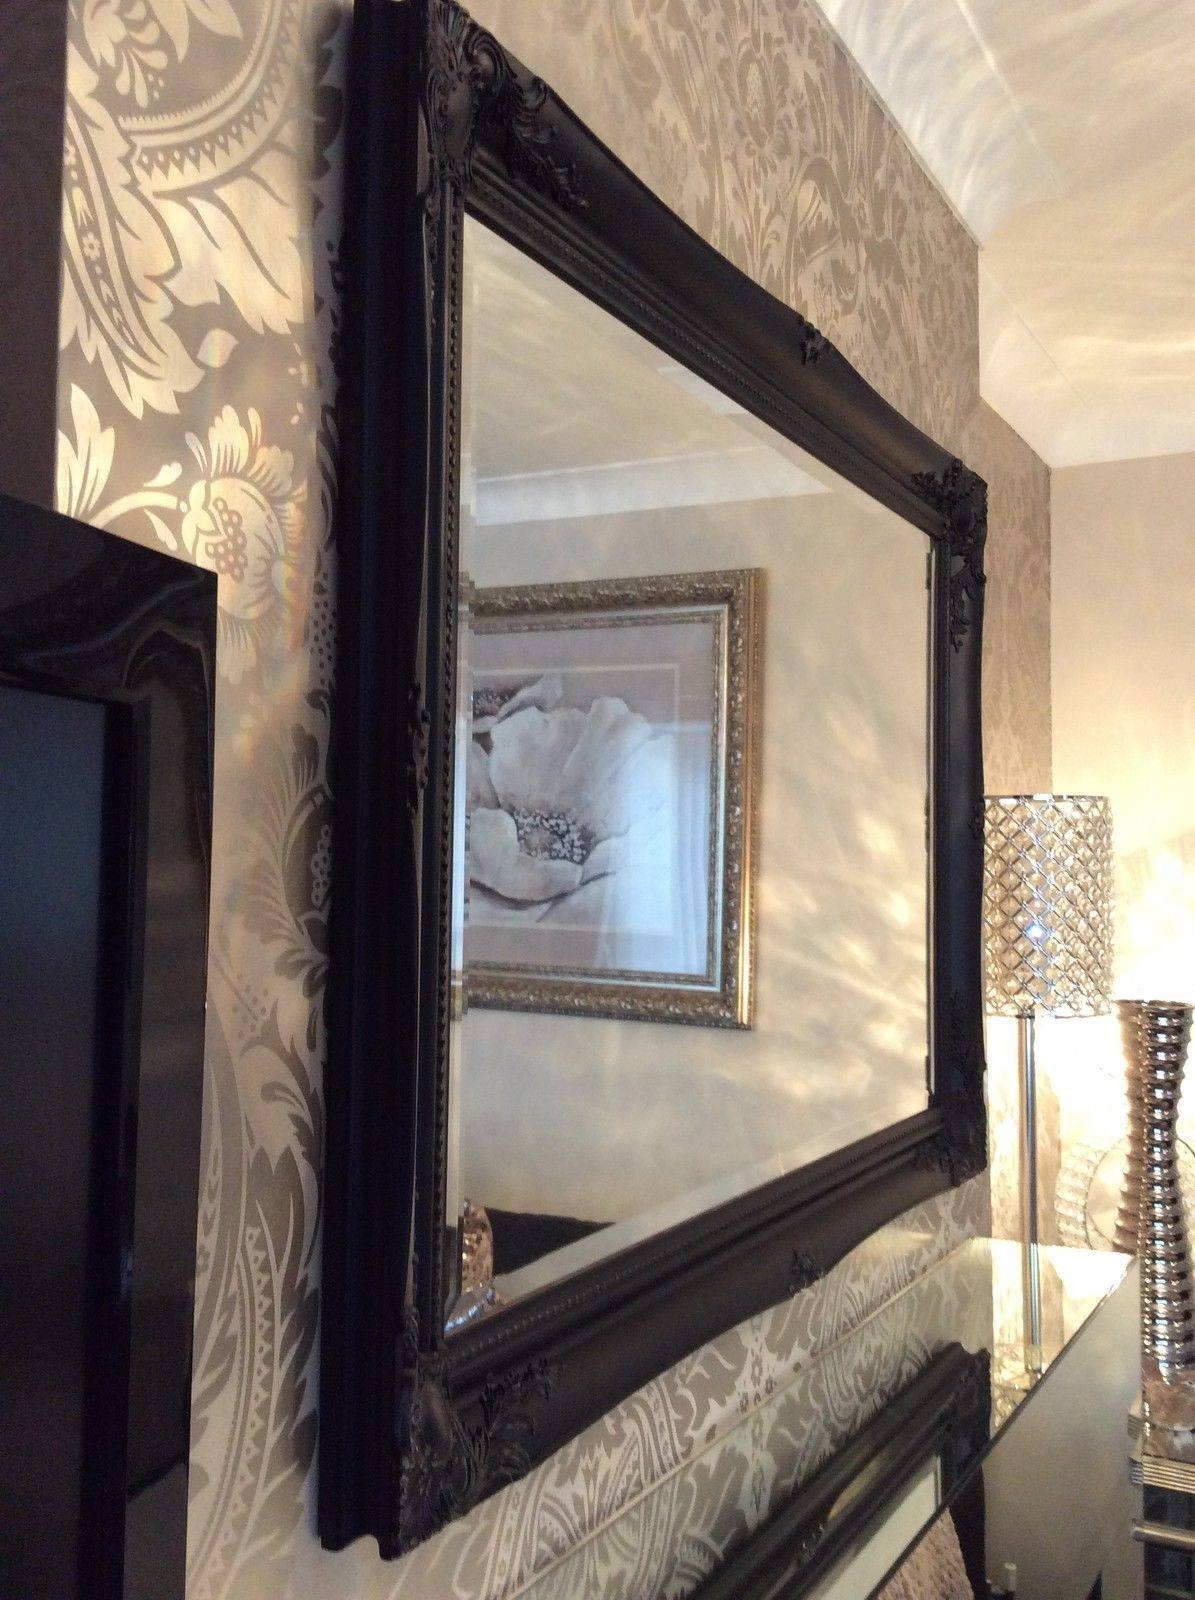 New Black Shabby Chic Ornate Mirror - Choose Your Size - Ready To in Ornate Black Mirrors (Image 8 of 15)